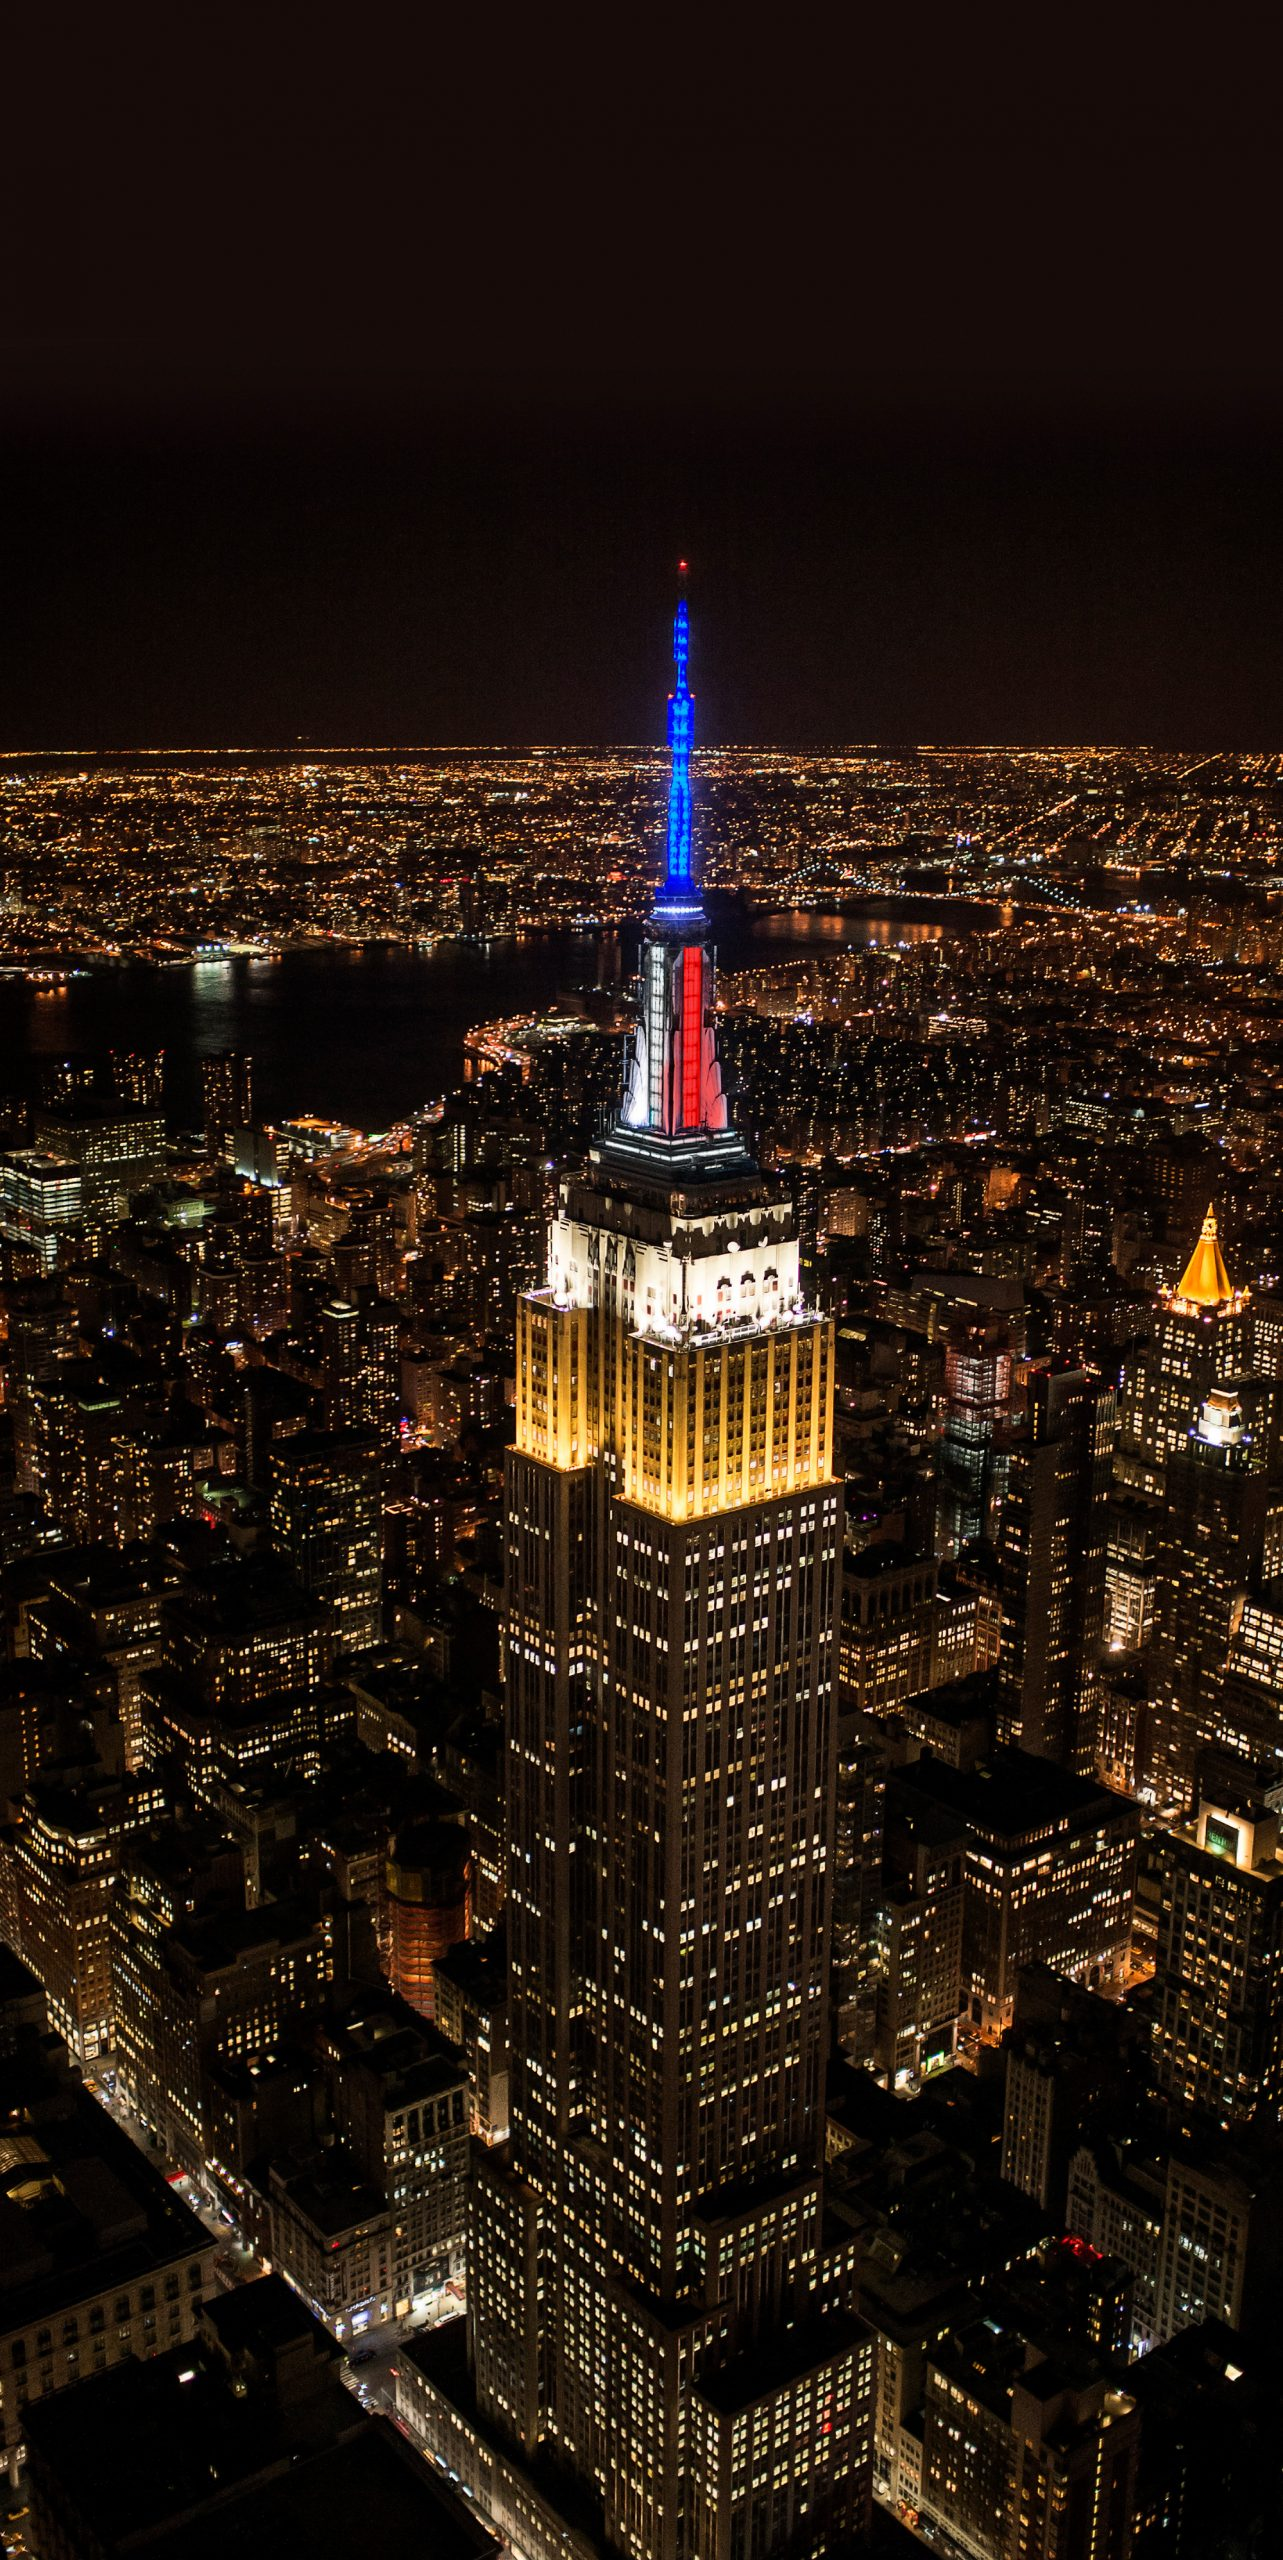 Tower Lighting 2020 04 24 00:00:00 | Empire State Building Intended For Empire State Building Lights Schedule